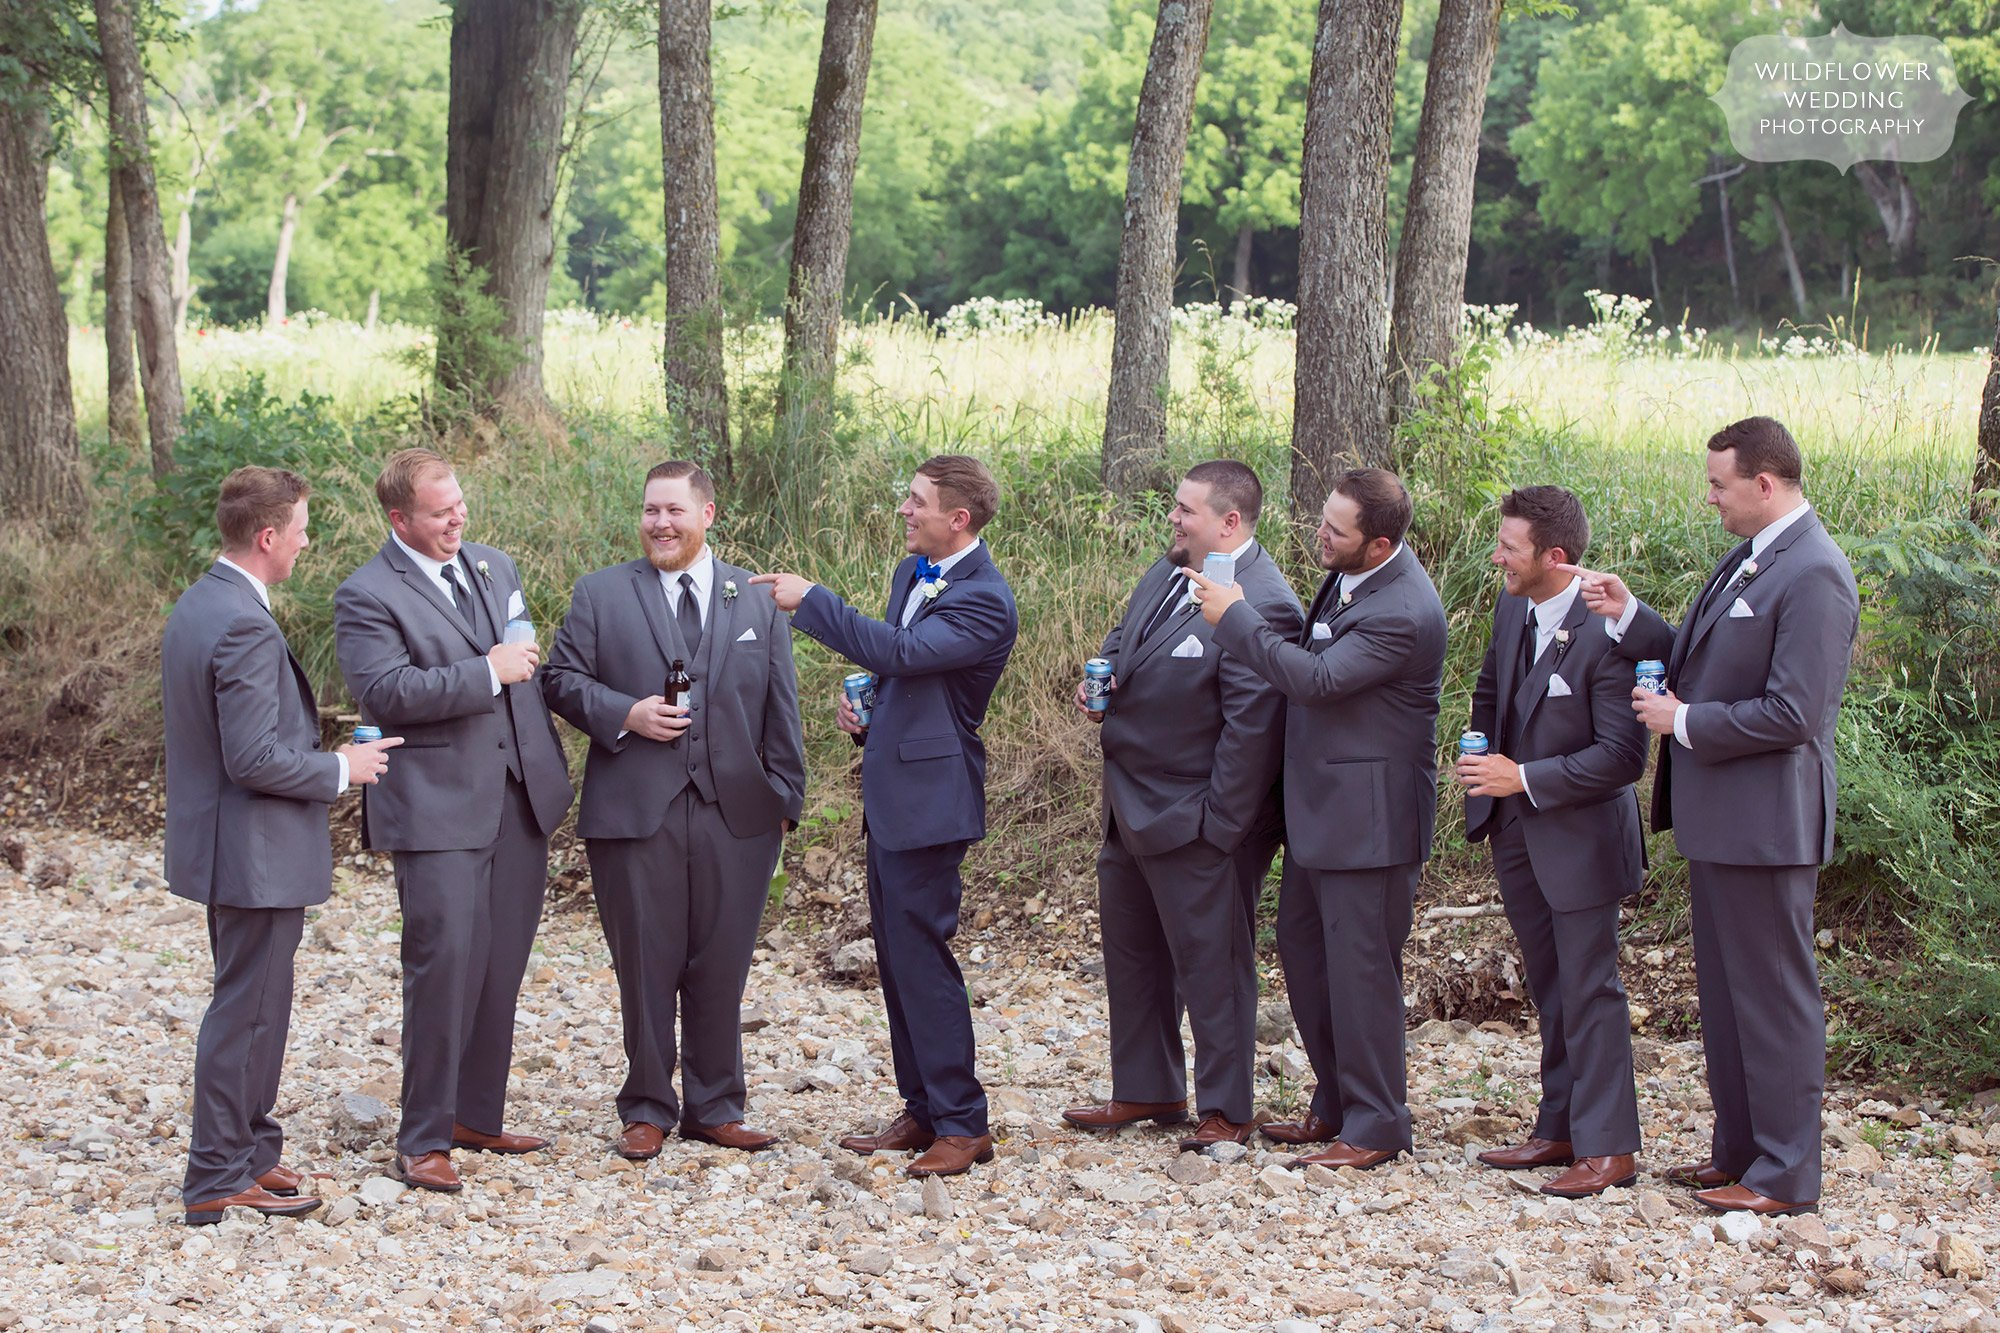 Funny photo of the groomsmen in the creek at this country wedding in MO.